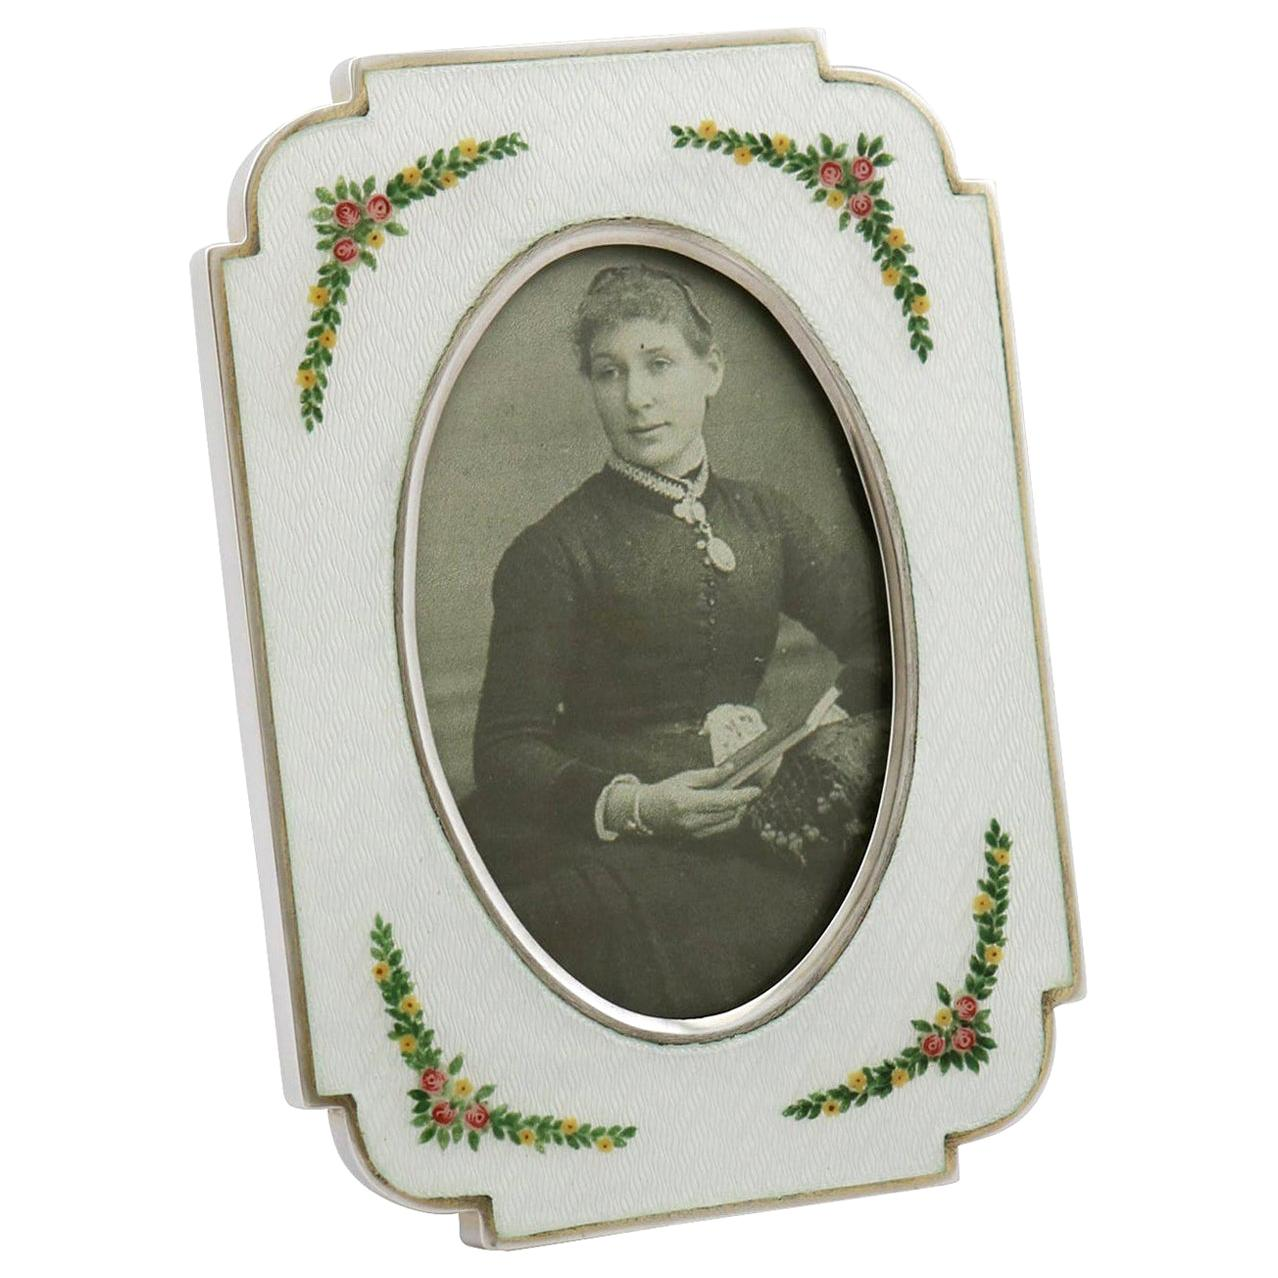 Italian Sterling Silver and Enamel Photograph Frame, circa 1970